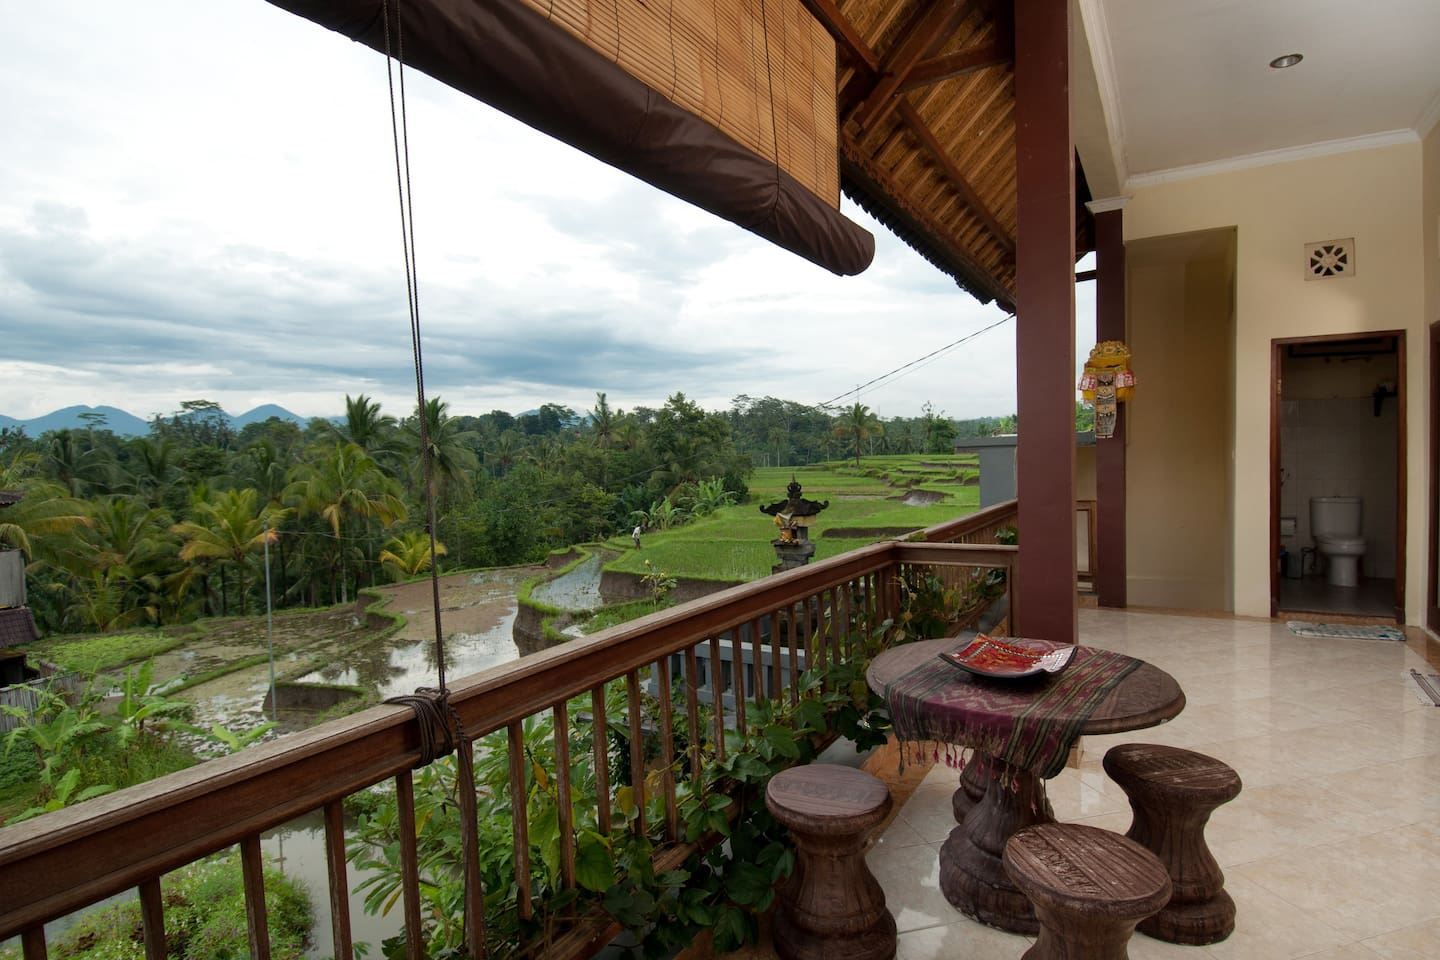 Di Atas suite has a stunning view, two large comfortable rooms, its own kitchen and bathroom.